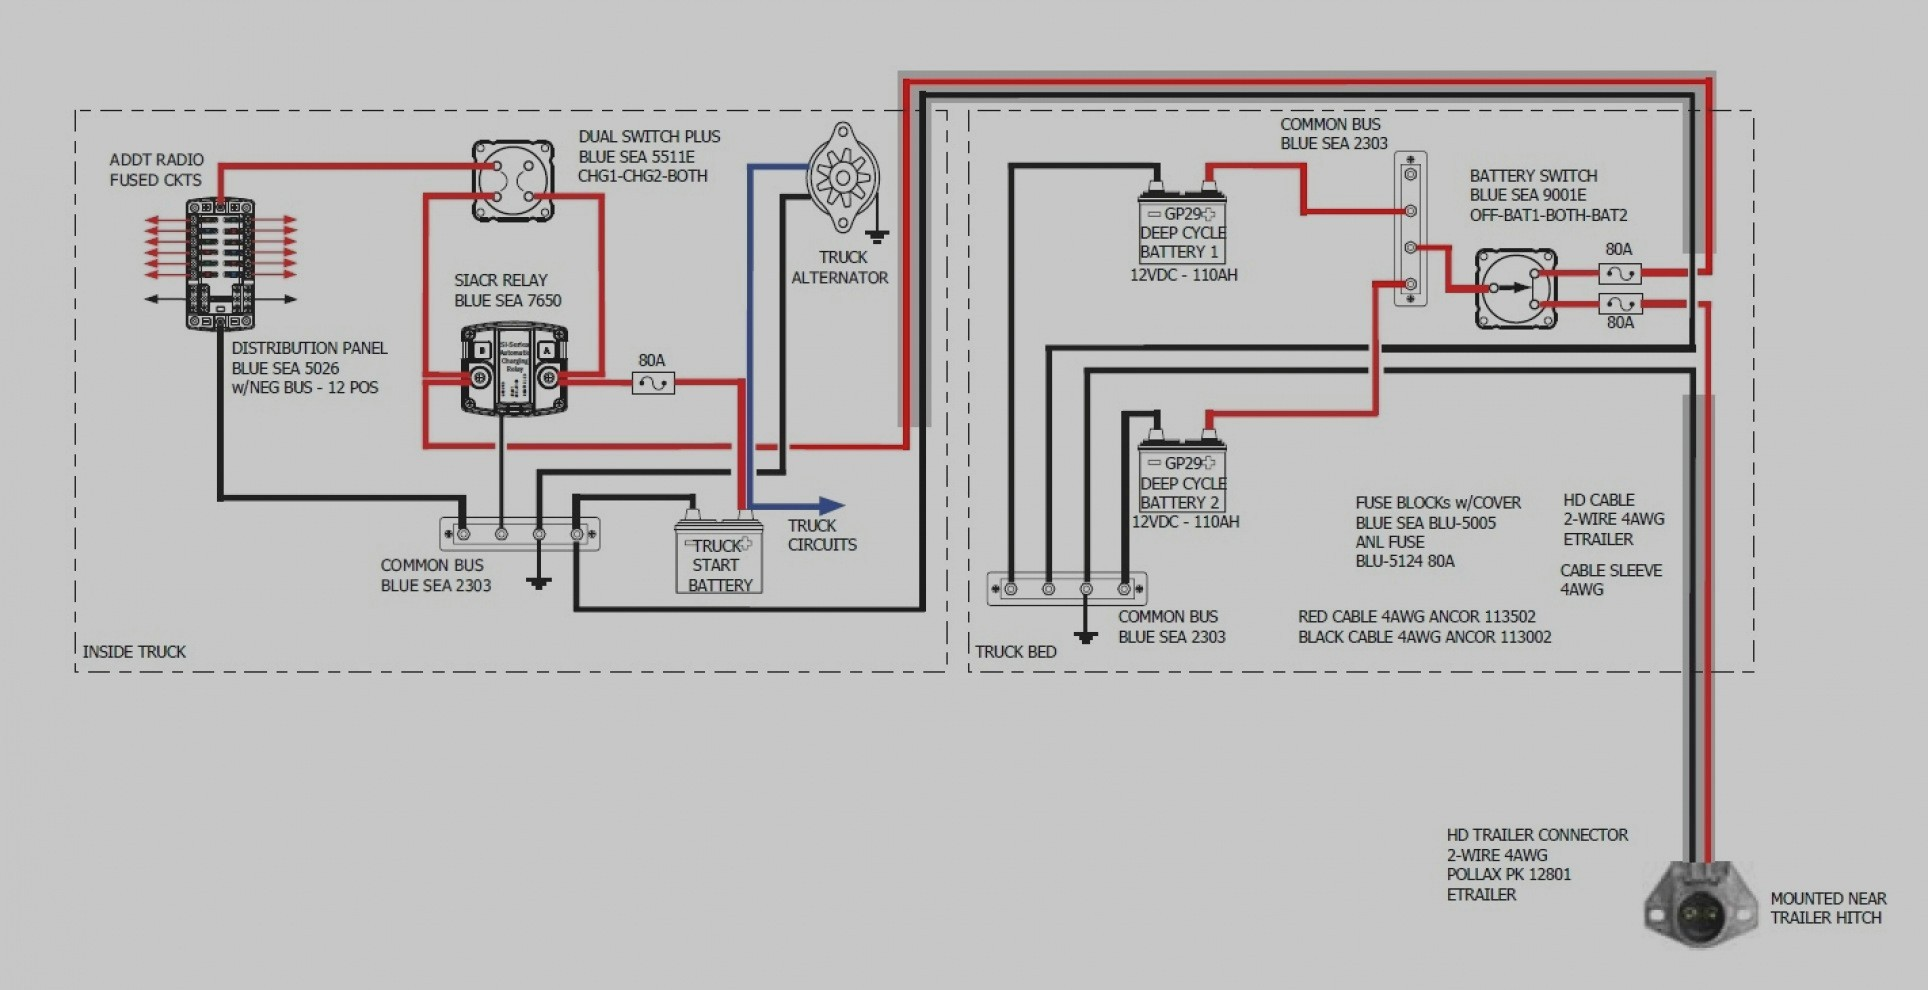 Pop Up Campers Jayco Fuse Box - Wiring Diagram And bell-attachment -  bell-attachment.worldwideitaly.itbell-attachment.worldwideitaly.it